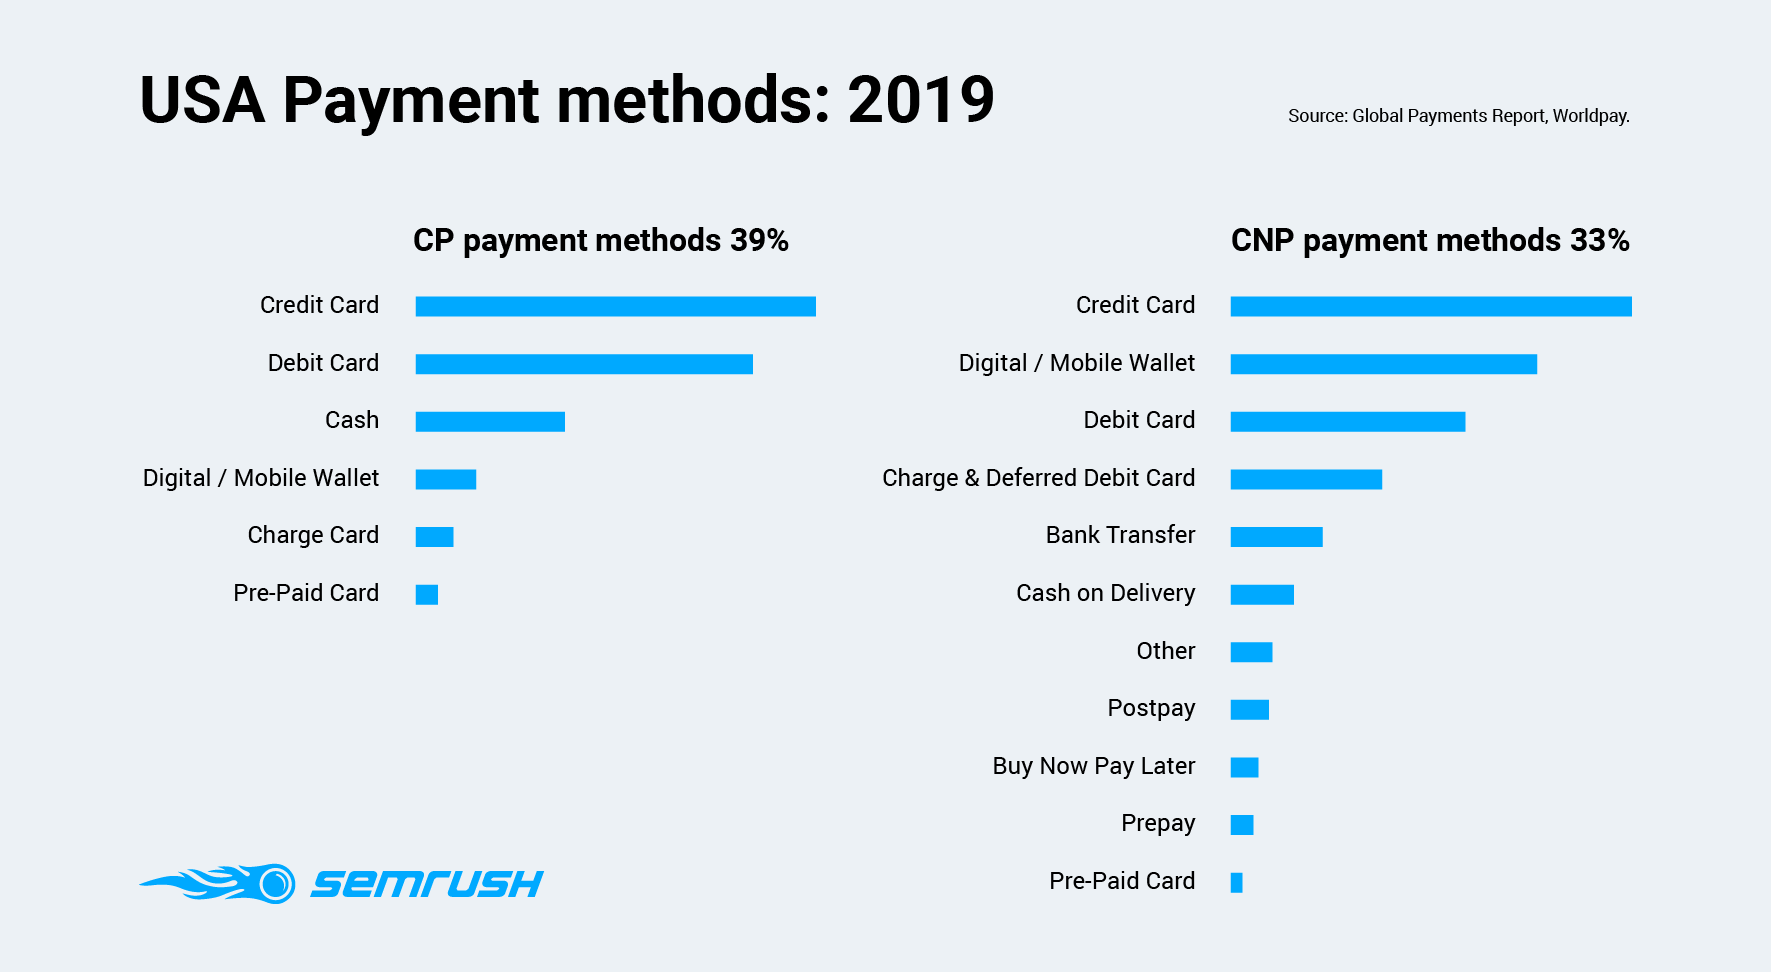 USA Payment methods